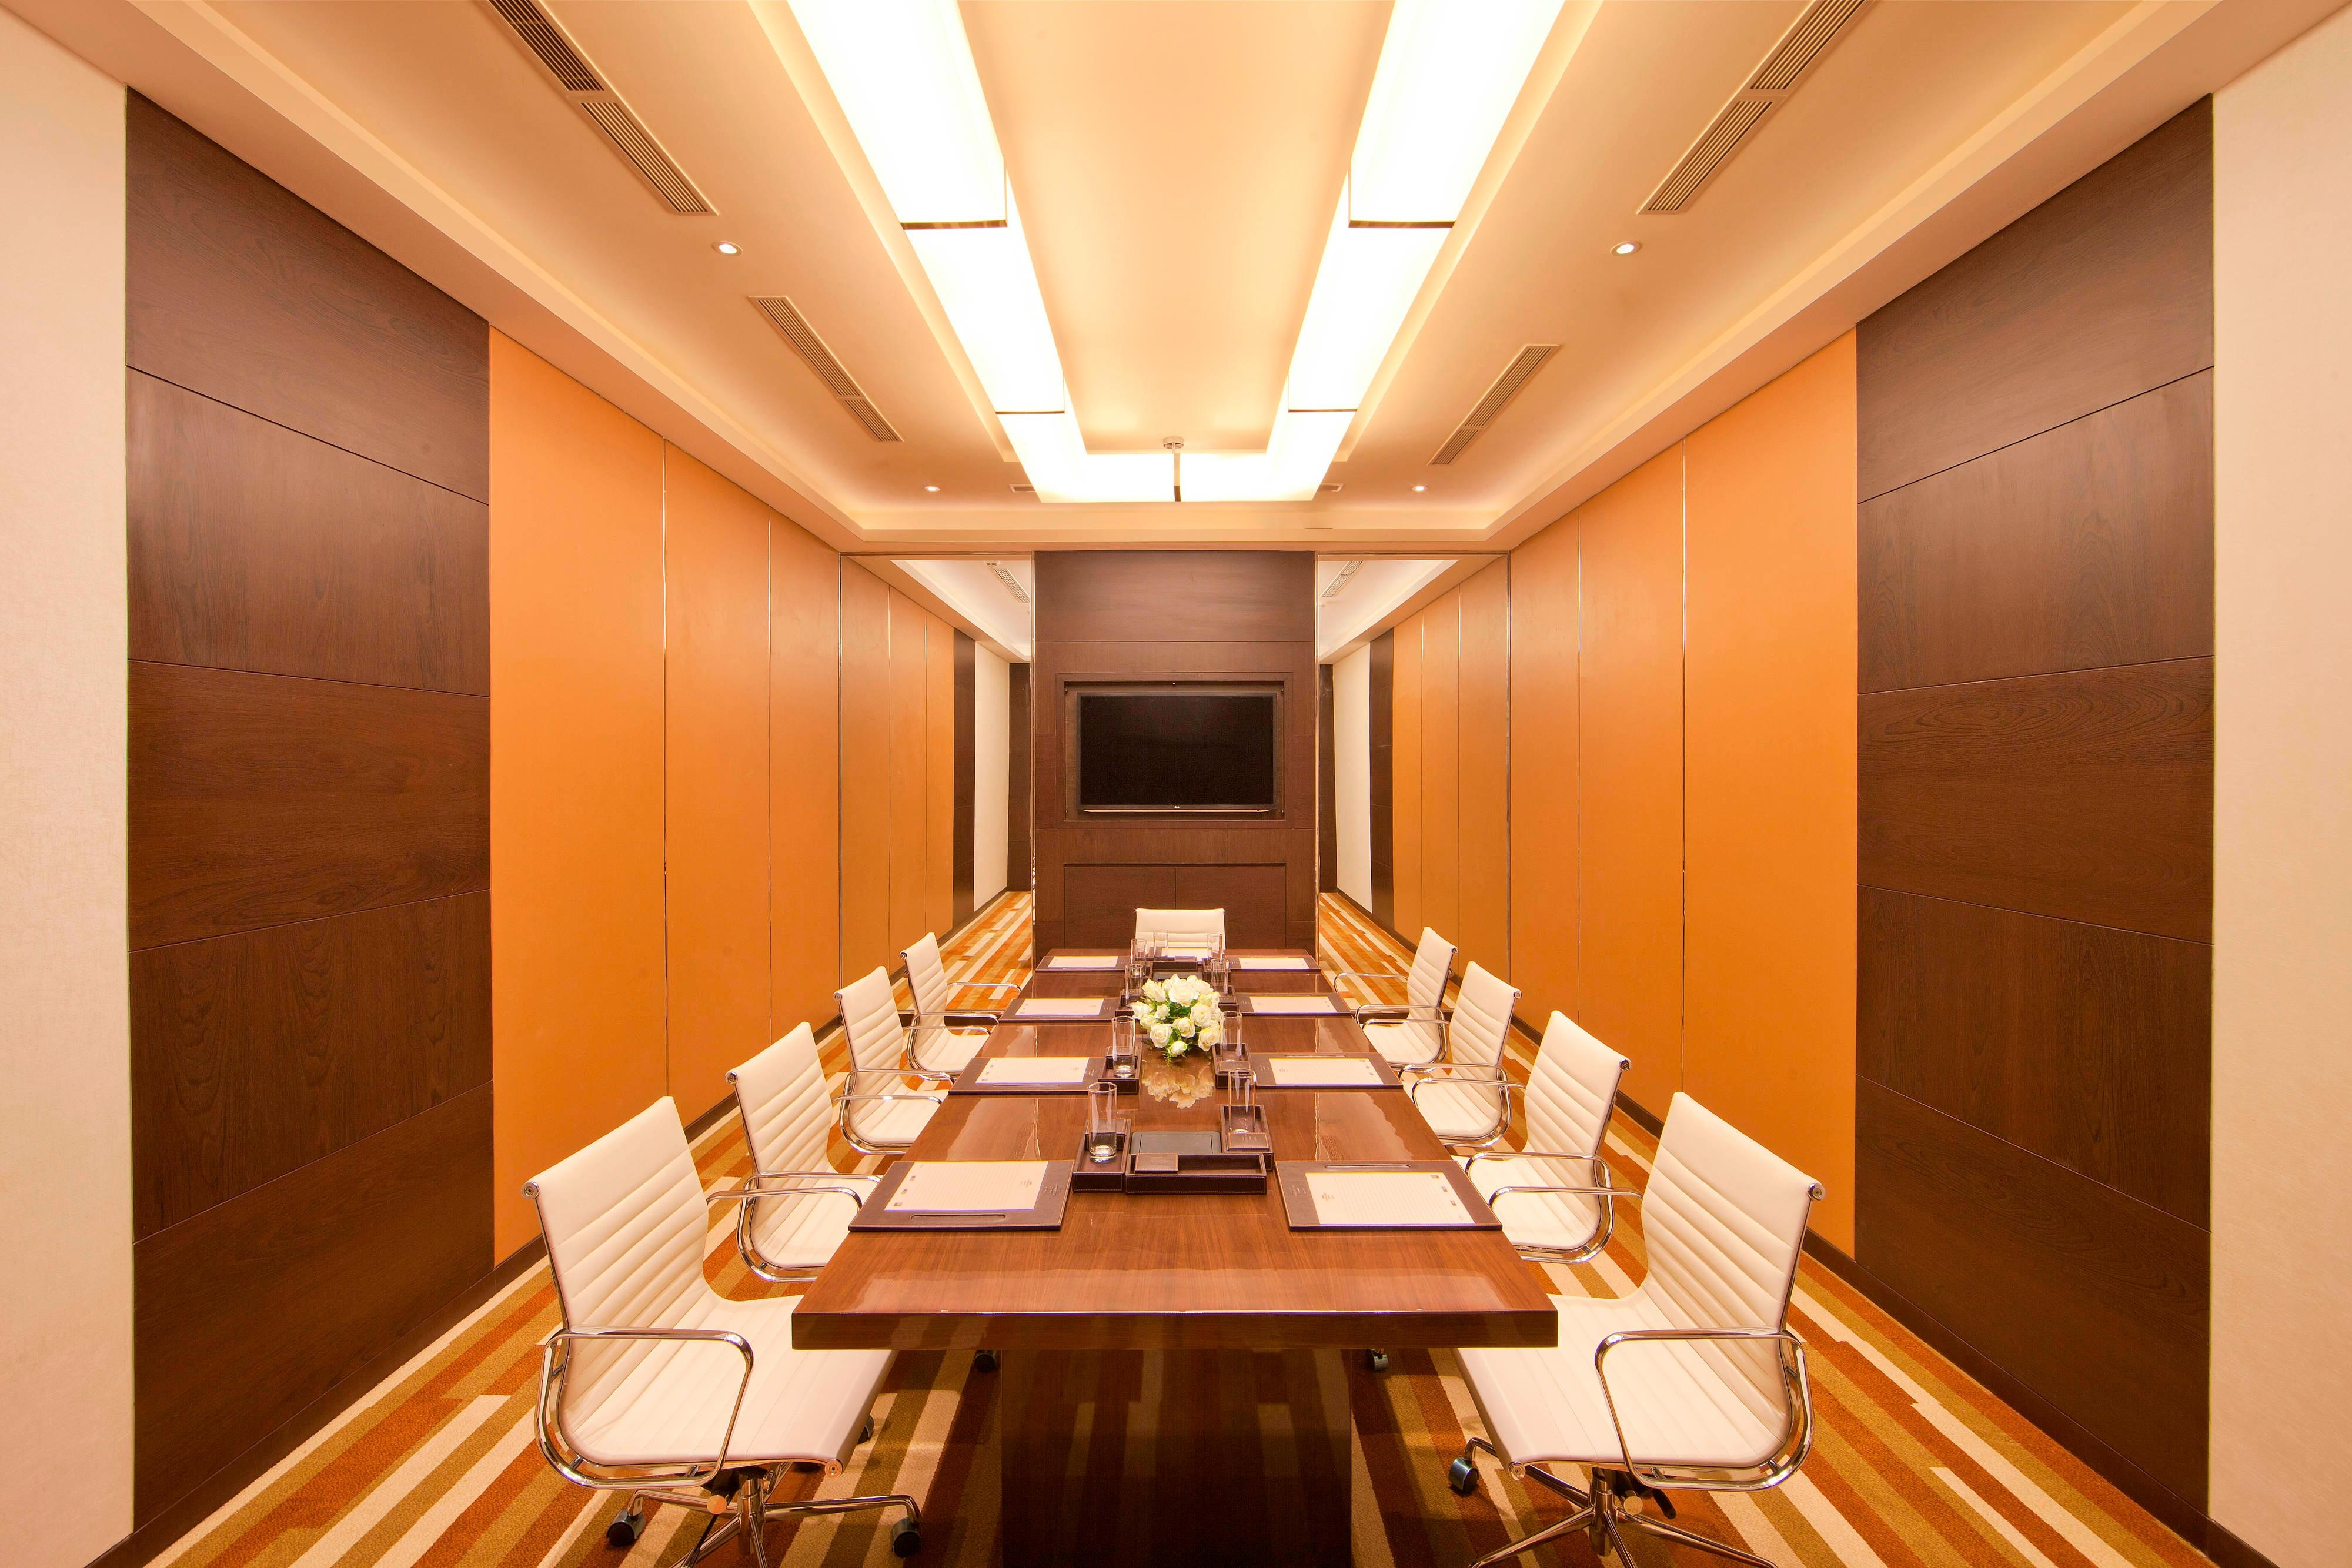 Bhopal meeting rooms